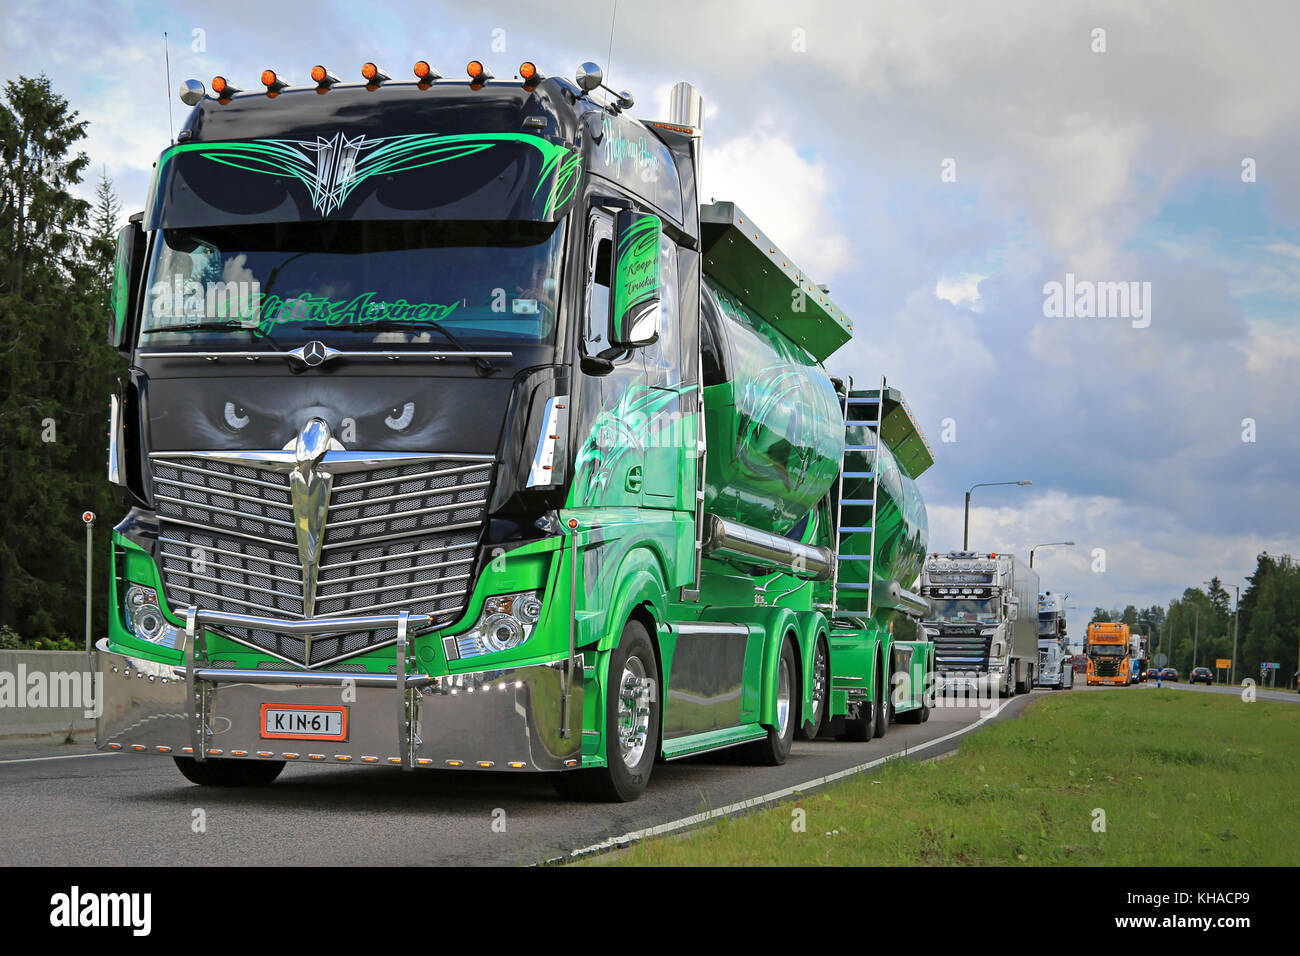 JALASJARVI, FINLAND - AUGUST 6, 2015: Mercedes-Benz Actros 2551 Highway Hero owned by Kuljetus Auvinen Oy takes - Stock Image